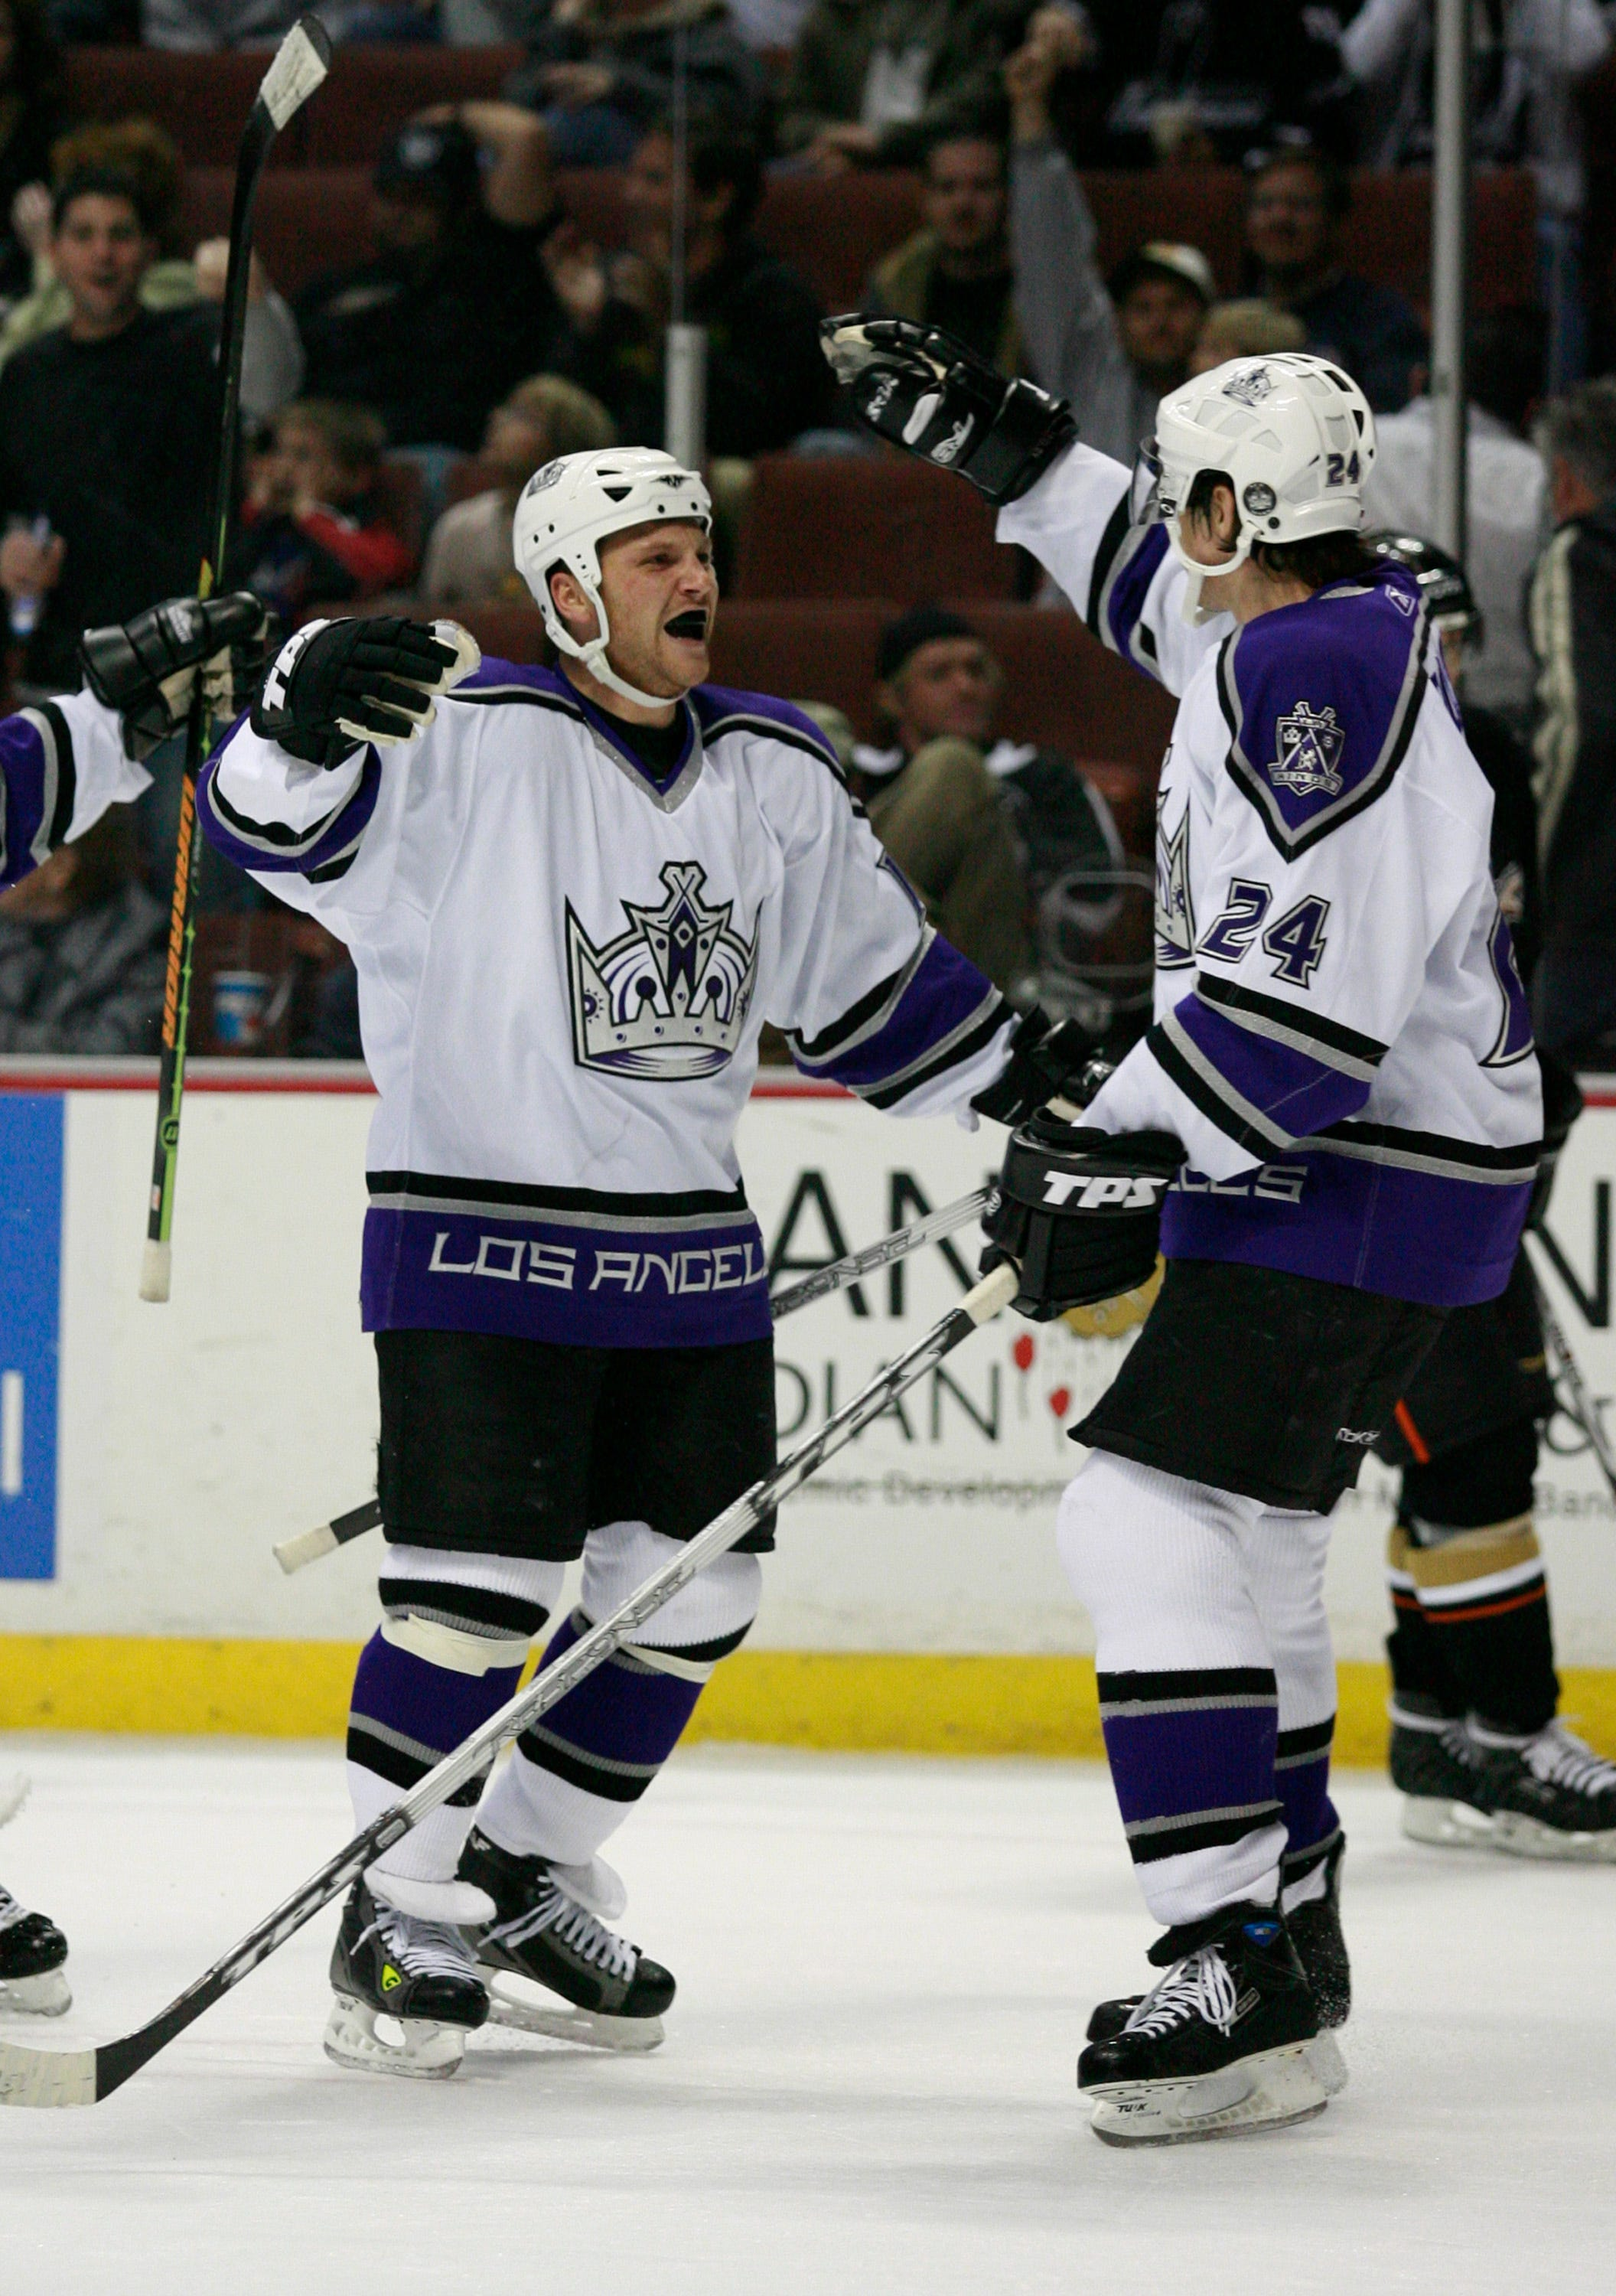 Retired NHL player Sean Avery said former coach Marc Crawford kicked him when he played for Kings